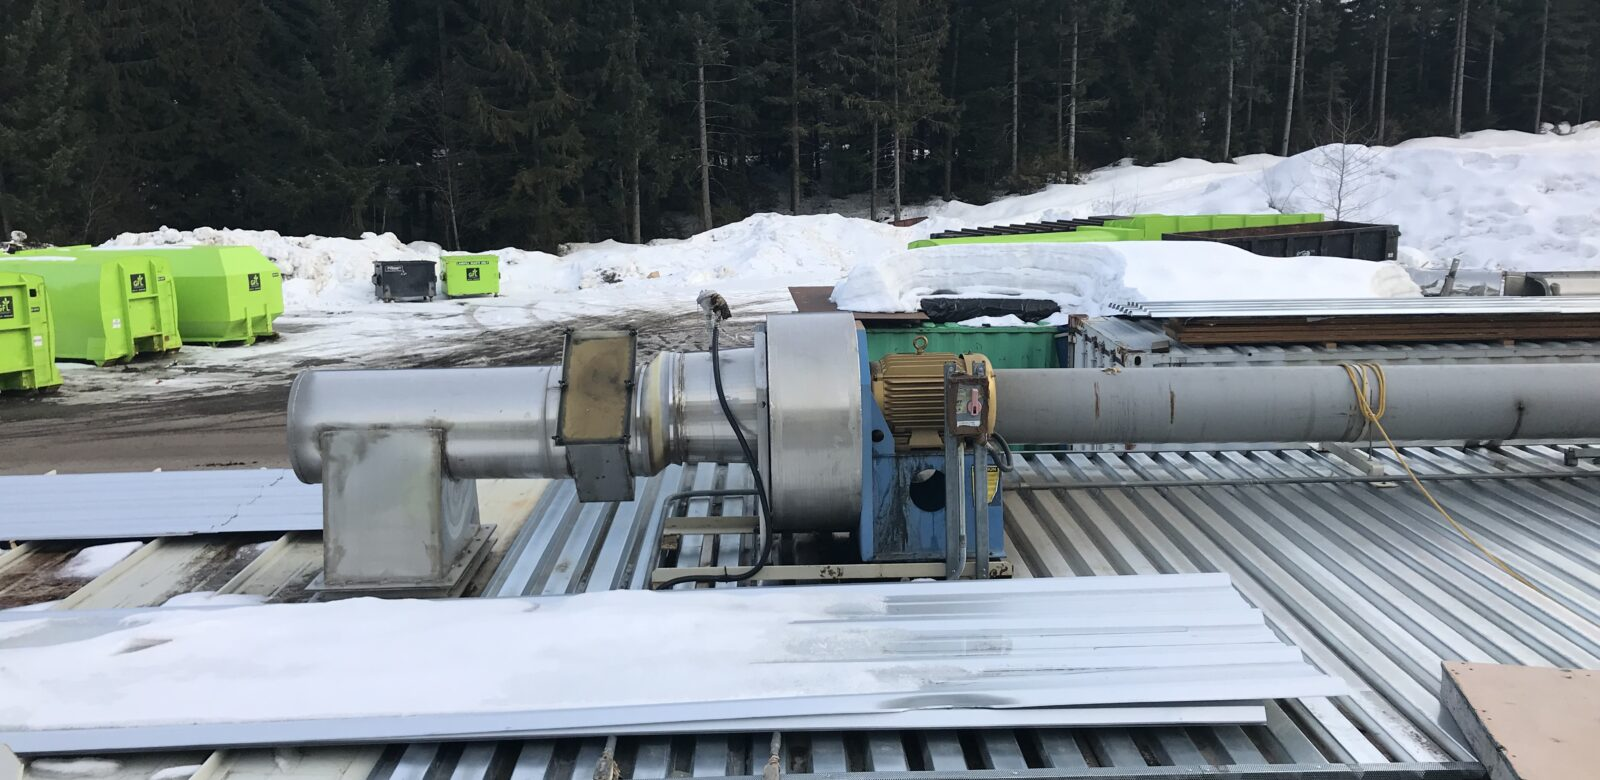 Resort Municipality of Whistler (RMOW) – Composting Facility Heat Recovery System